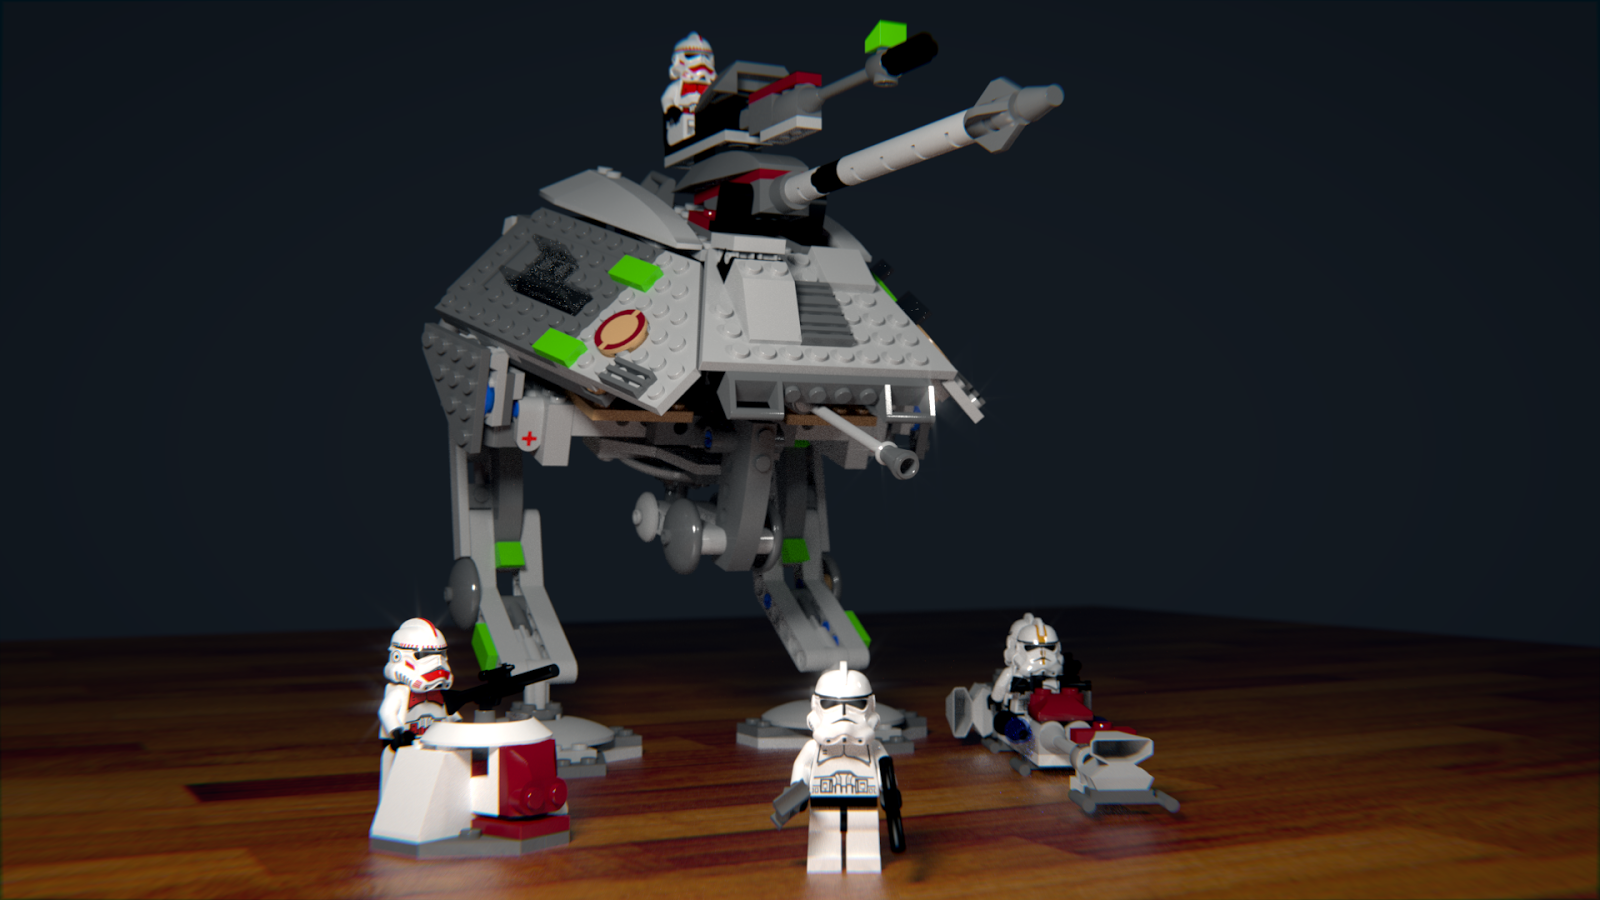 Lego Star Wars at-ap blender cycles render